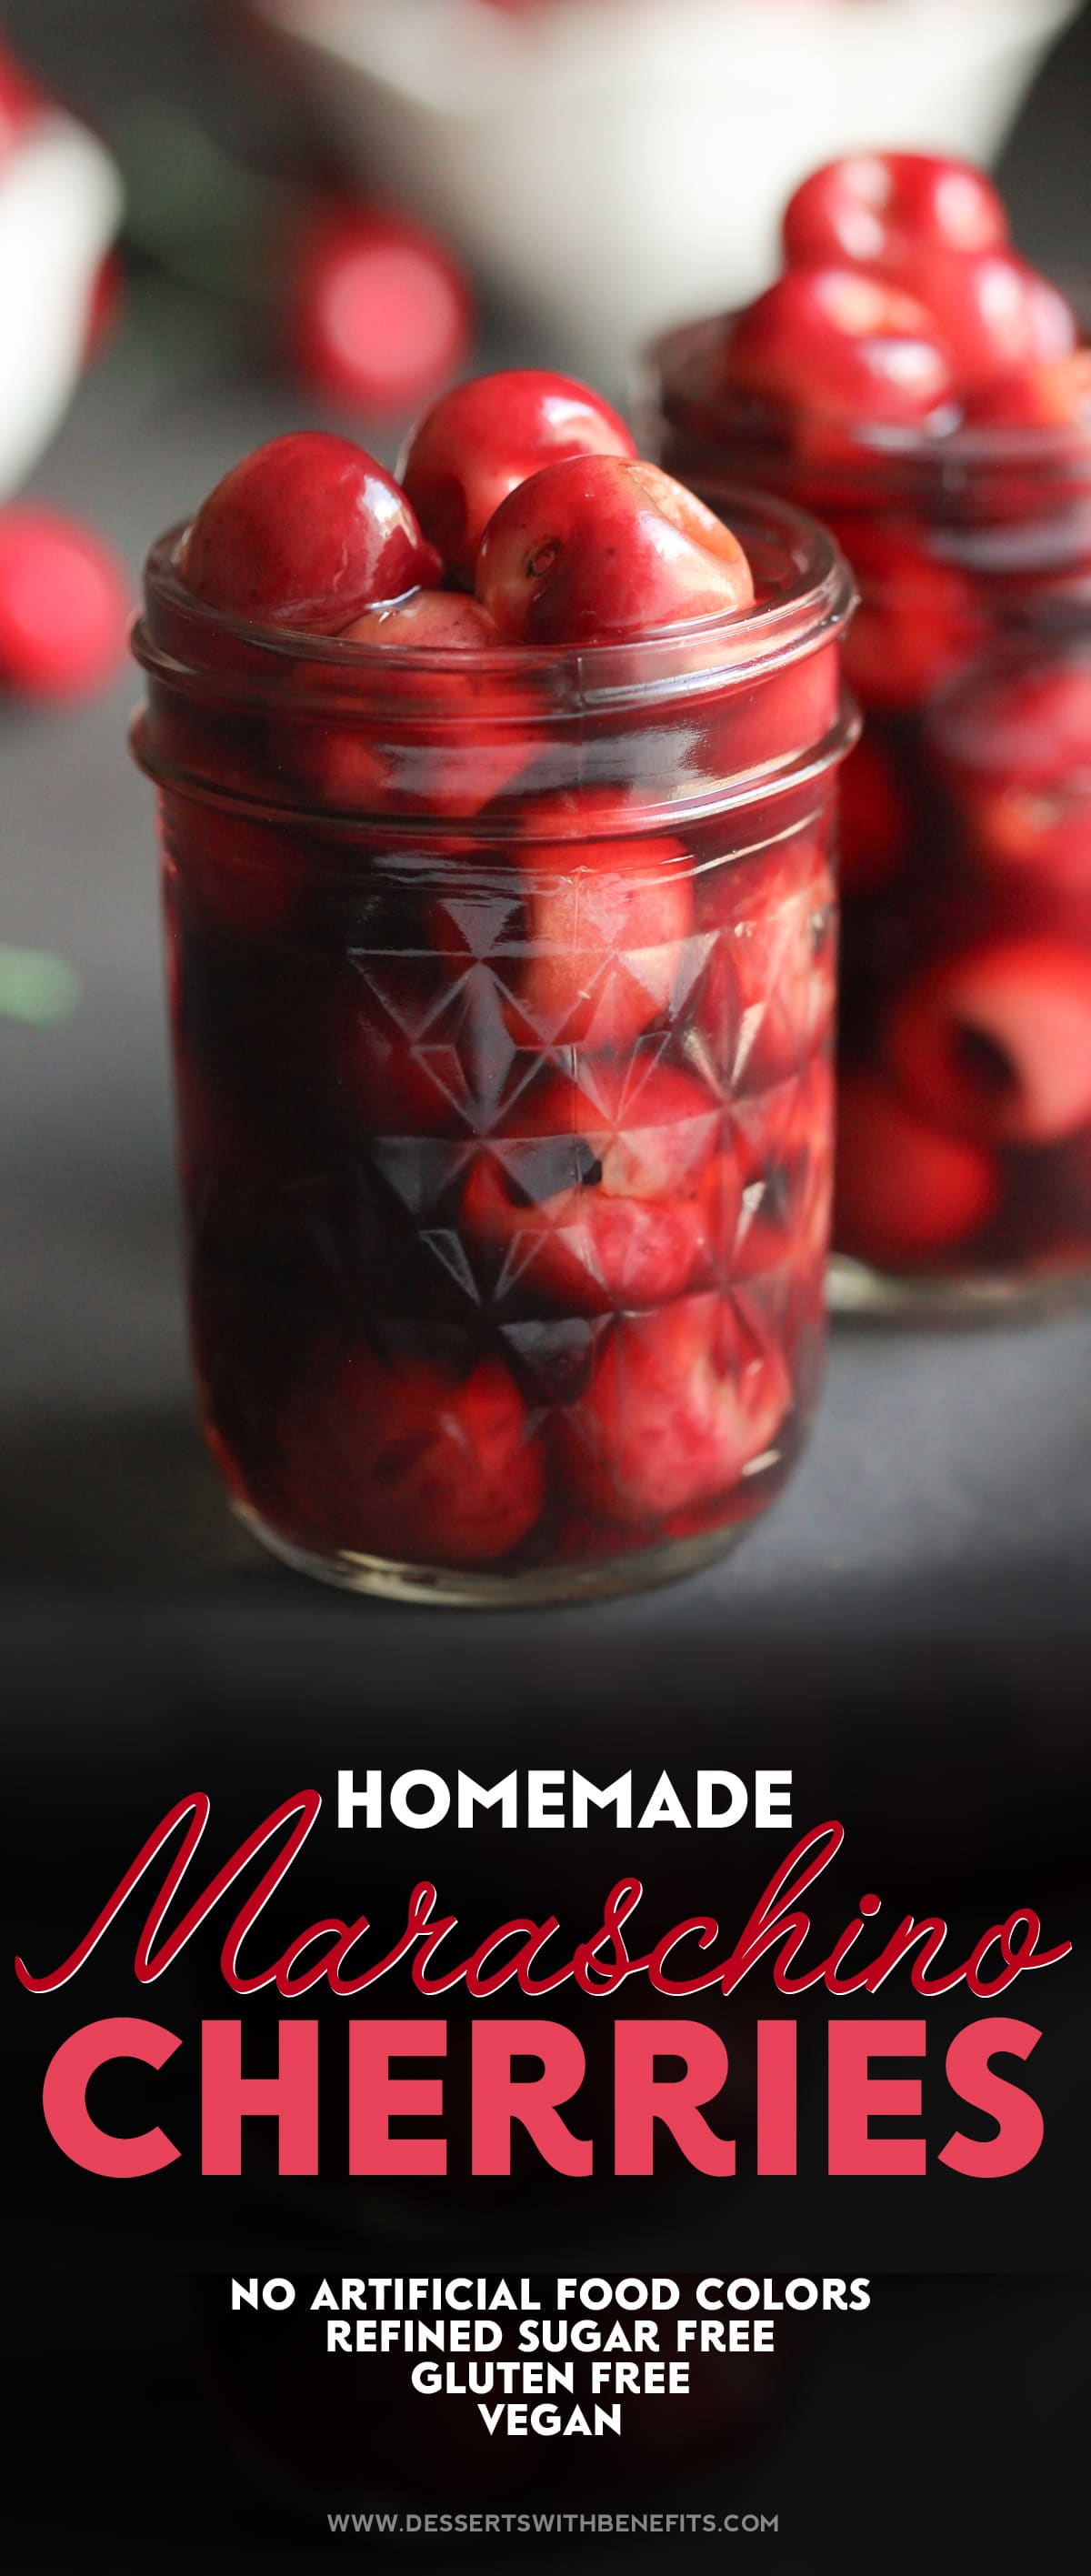 YES, you can make Maraschino Cherries at HOME! Here's a recipe for deliciously Healthy Homemade Maraschino Cherries, made all natural, fat free, refined sugar free, gluten free, and vegan -- Healthy Dessert Recipes at Desserts with Benefits